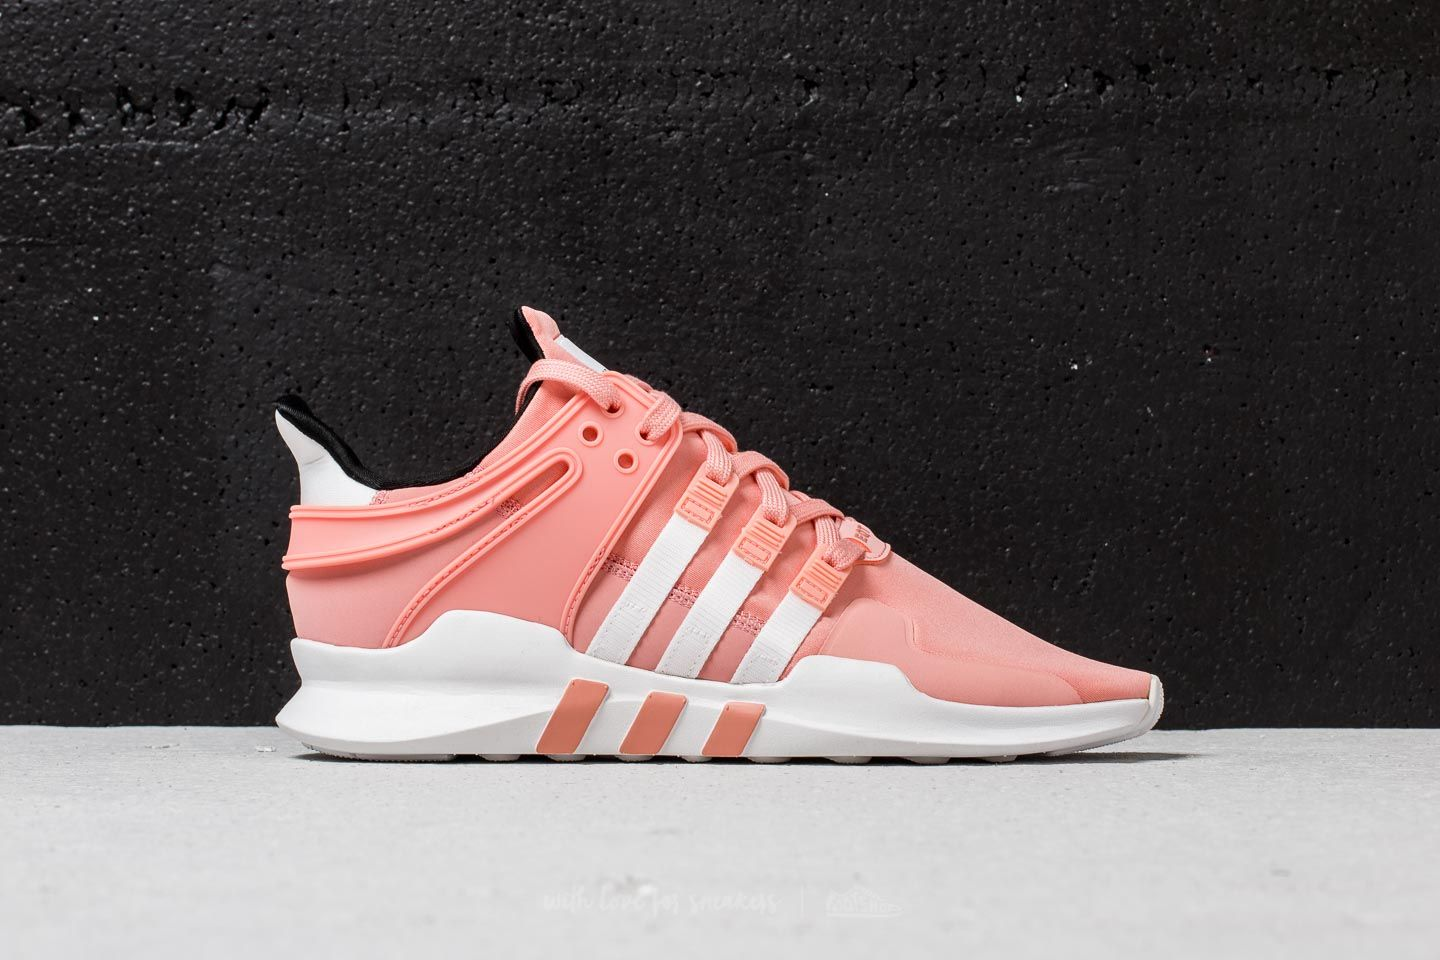 newest 1ad41 c8baa adidas EQT Support ADV Trace Pink/ Ftw White/ Core Black ...